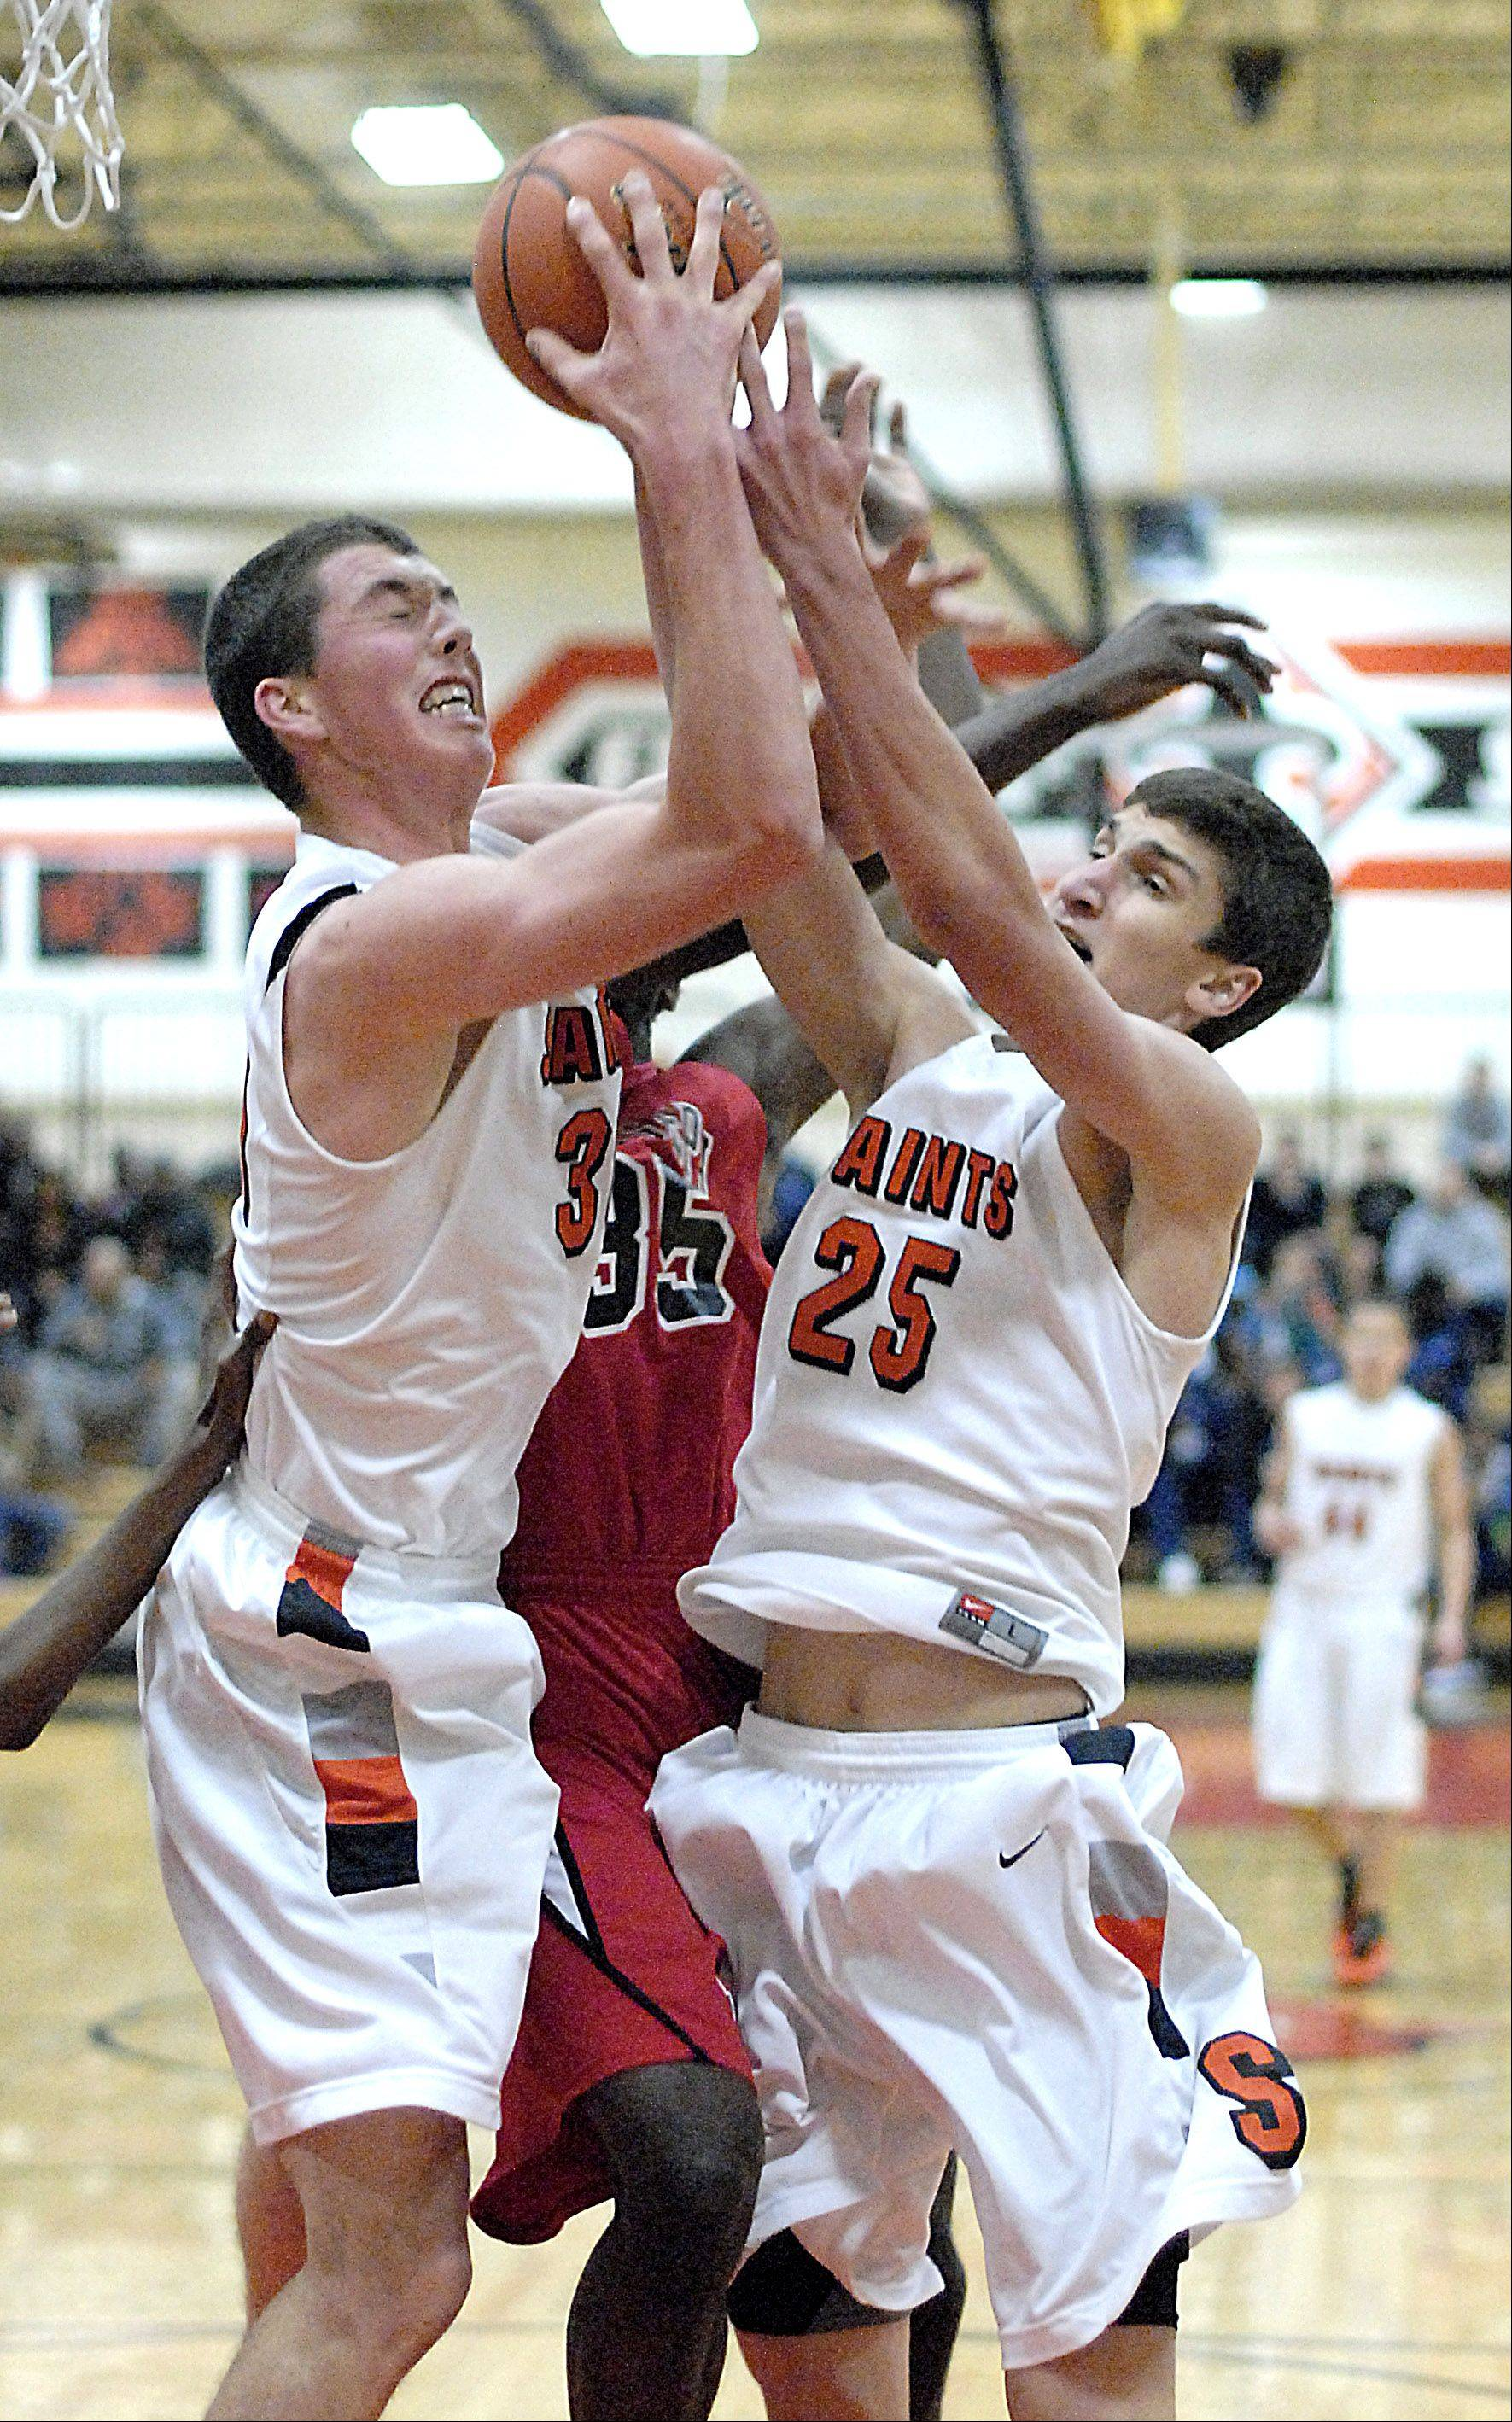 St. Charles East's David Mason and Dan Wilkerson sandwich St. Joseph's Karriem Simmons as they fight for a rebound in the first quarter on Friday, November 23.